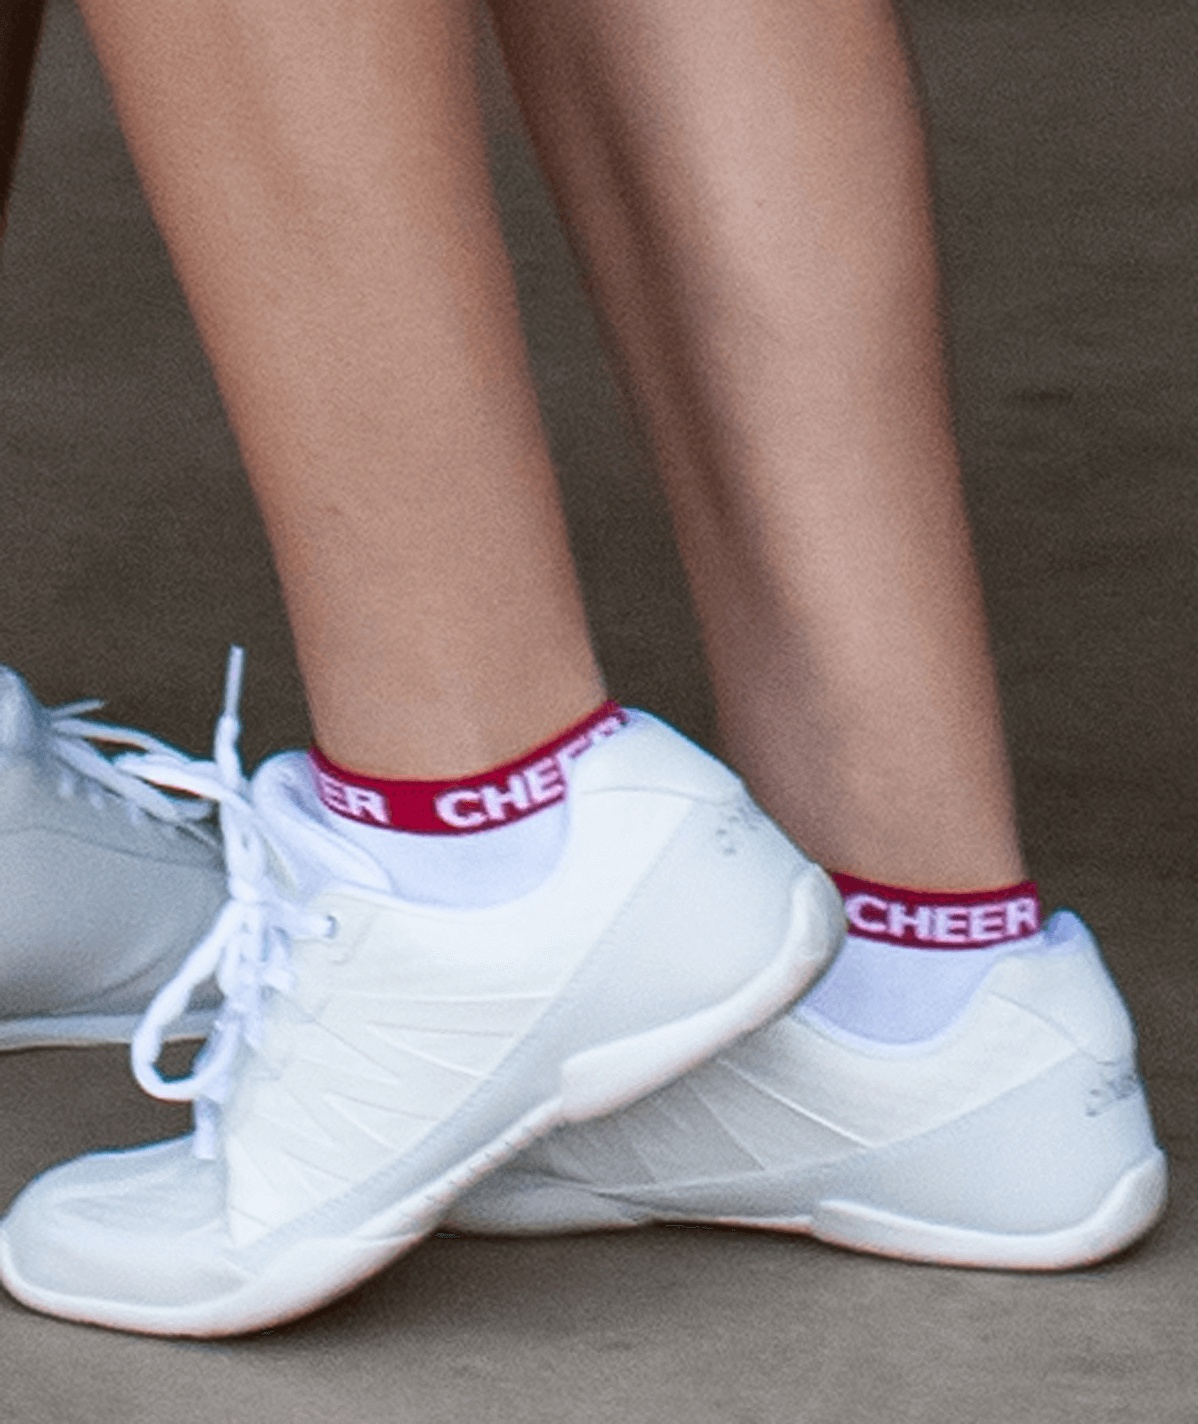 Chassé Low Anklet Cheer Stripe